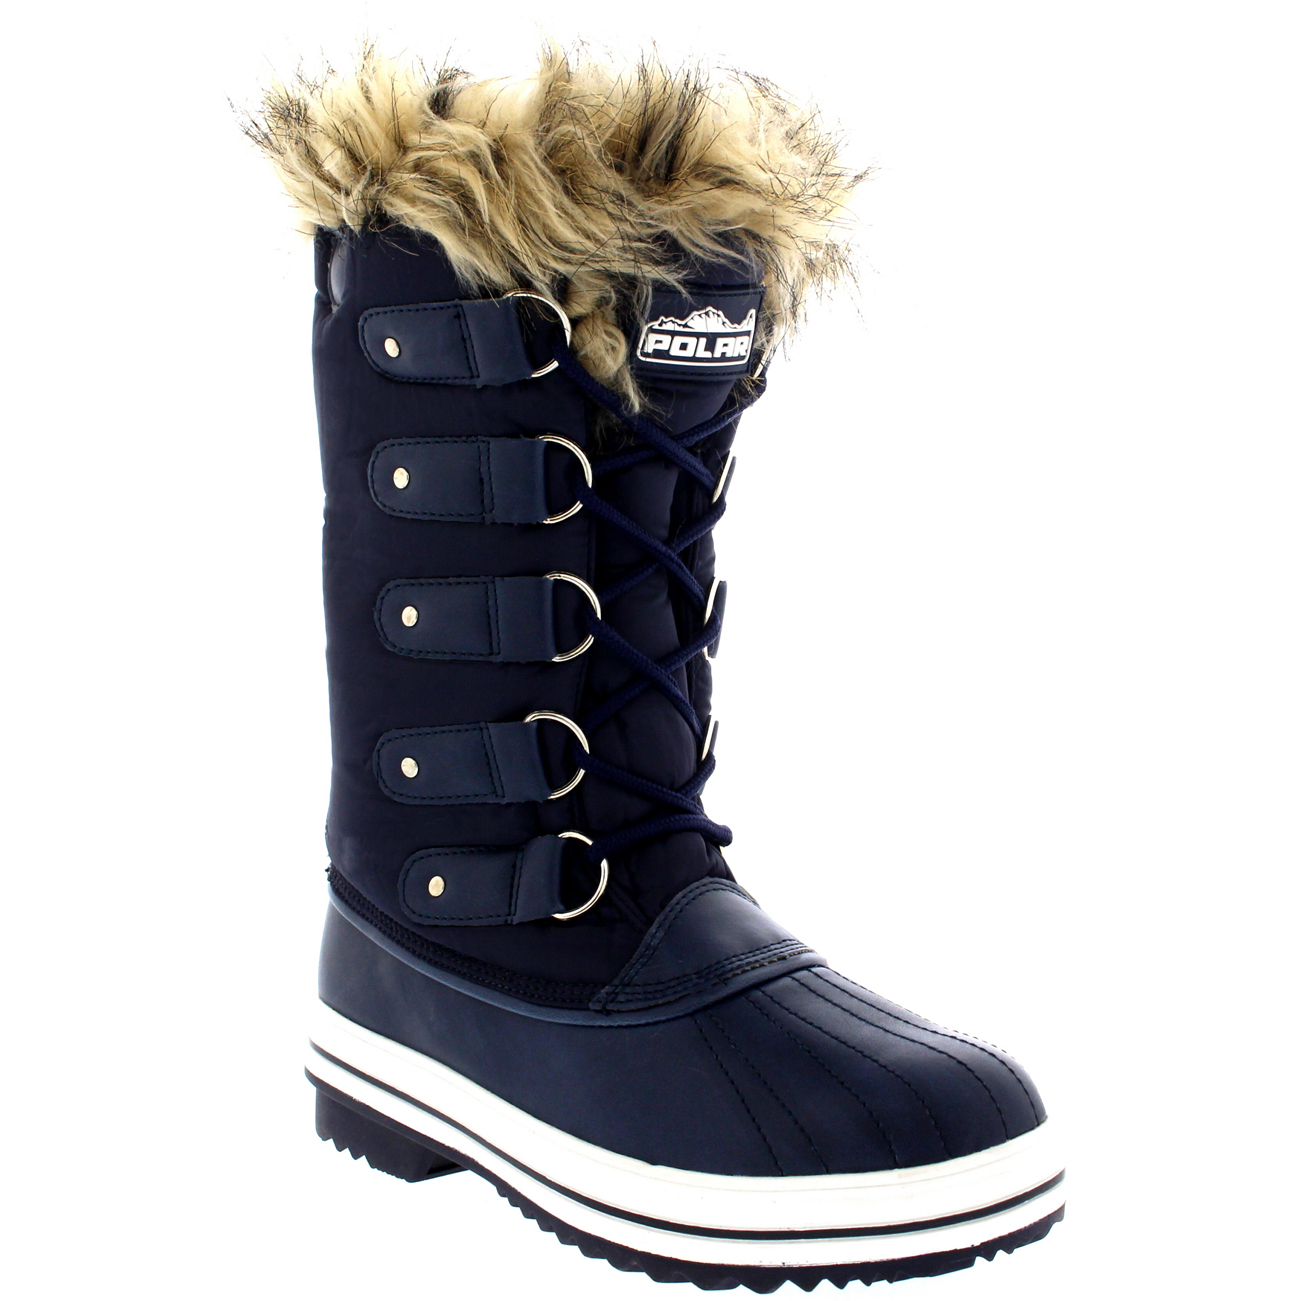 Womens Fur Cuff Lace Up Rubber Sole Tall Winter Snow Rain